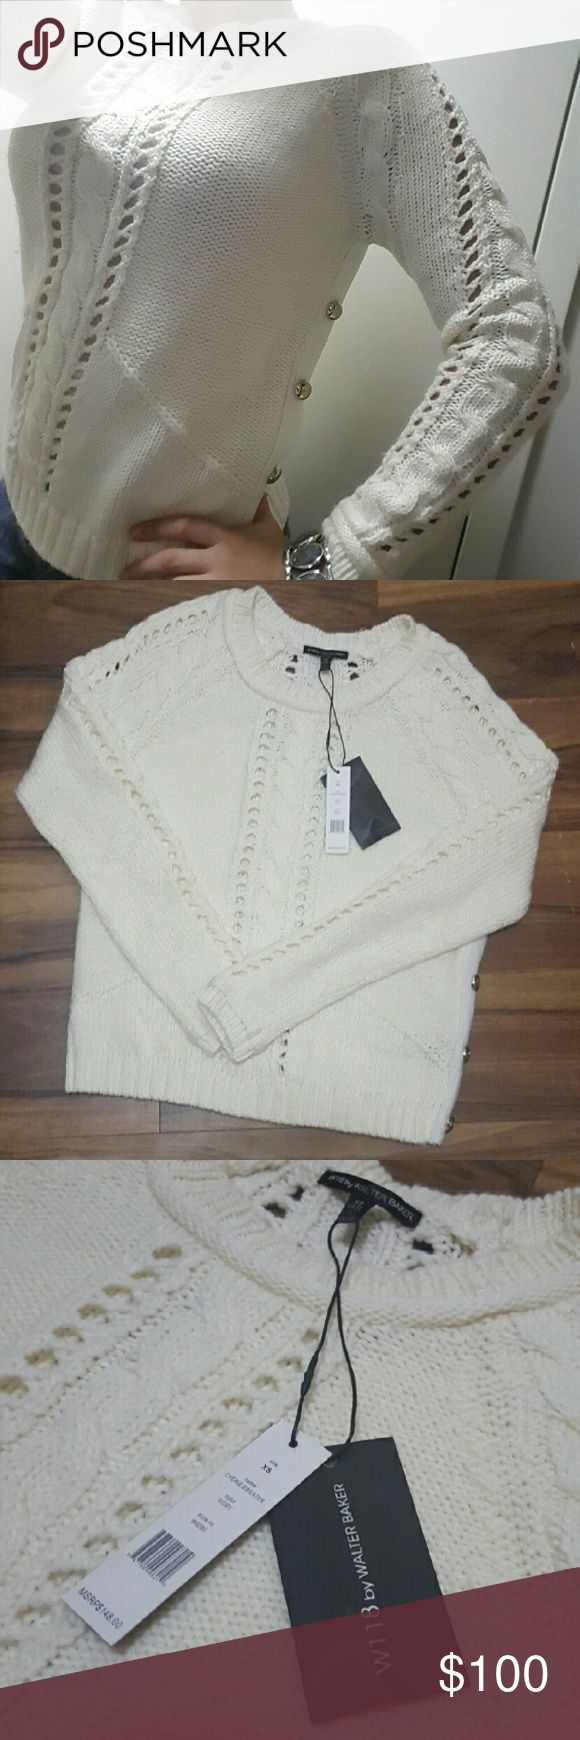 W118 by Walter Baker Cable Knit Sweater (NWT) White cable knit sweater by W118 By Walter Baker. Brand new with tags. Silver crown button detailing on the side. All 4 buttons still in tact. Extra buttons included. Size XS. Very warm and cozy, perfect for the winter! Price is negotiable. W118 by Walter Baker Sweaters Crew & Scoop Necks